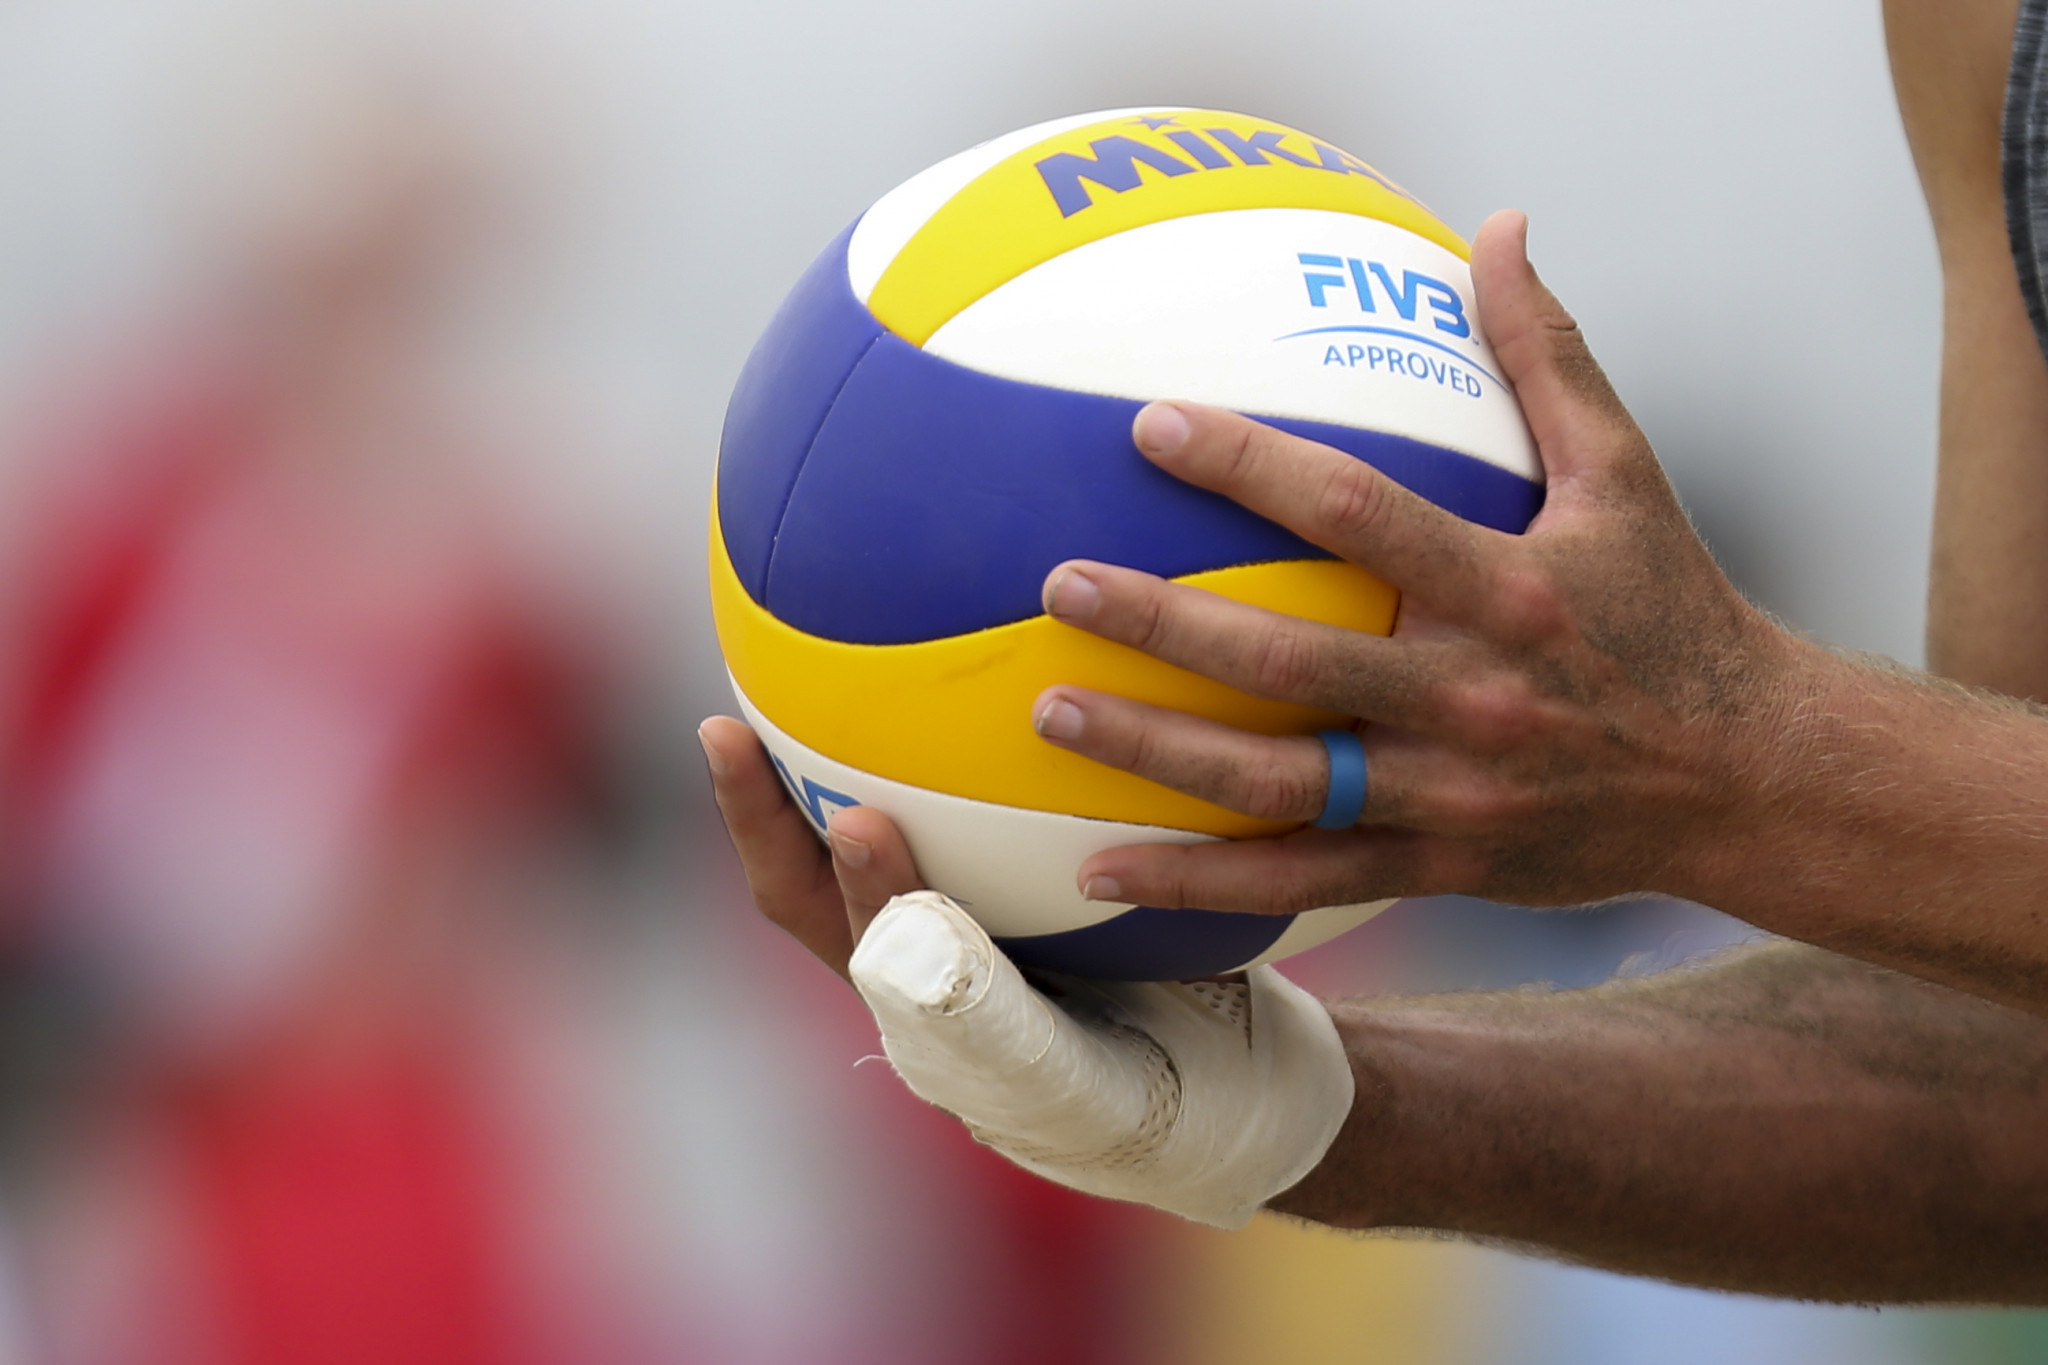 Kenya hoping beach volleyball qualifier results are annulled after coronavirus withdrawals